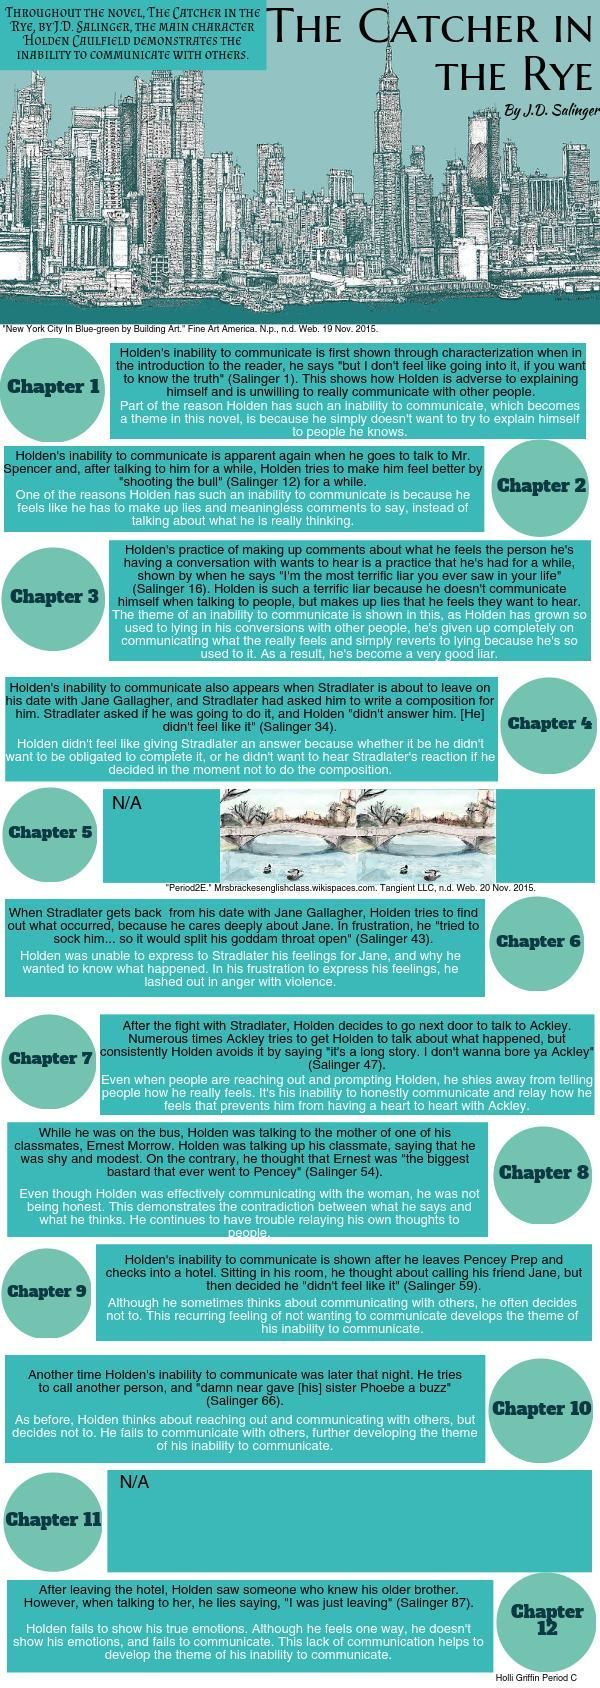 Writer Service The Catcher In The Rye  Piktochart Infographic Editor College Essay Thesis also Mla Style Help The Catcher In The Rye  Piktochart Infographic Editor  High School  Cheap Writers Services